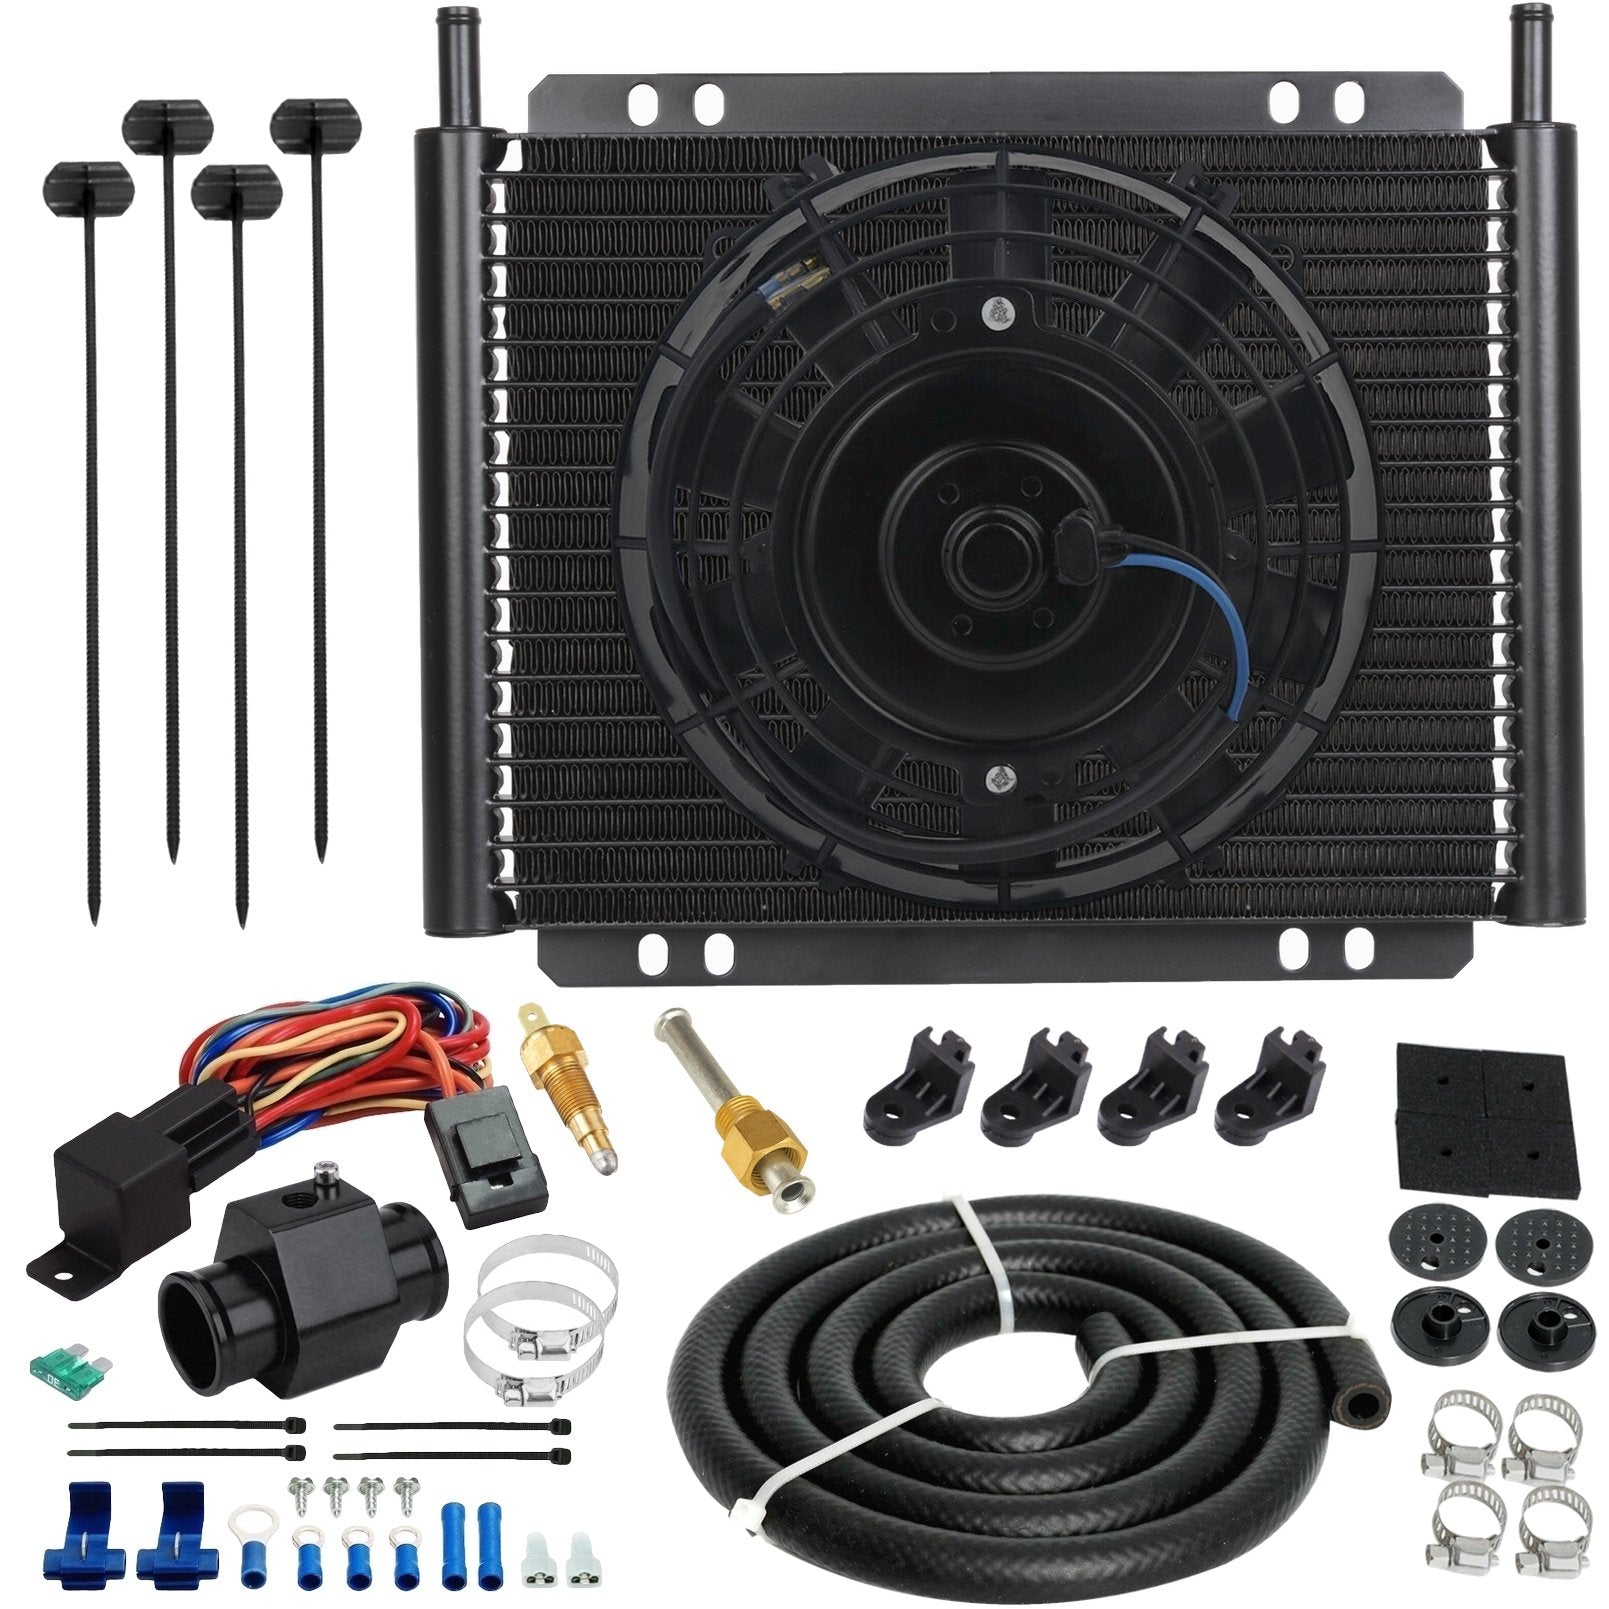 23 Row Engine Transmission Oil Cooler 8 Inch Electric Cooling Fan In-Hose Grounding Temp Switch Kit-Oil Cooler-American Volt-6AN-26mm-140'F On - 125'F Off-American Volt